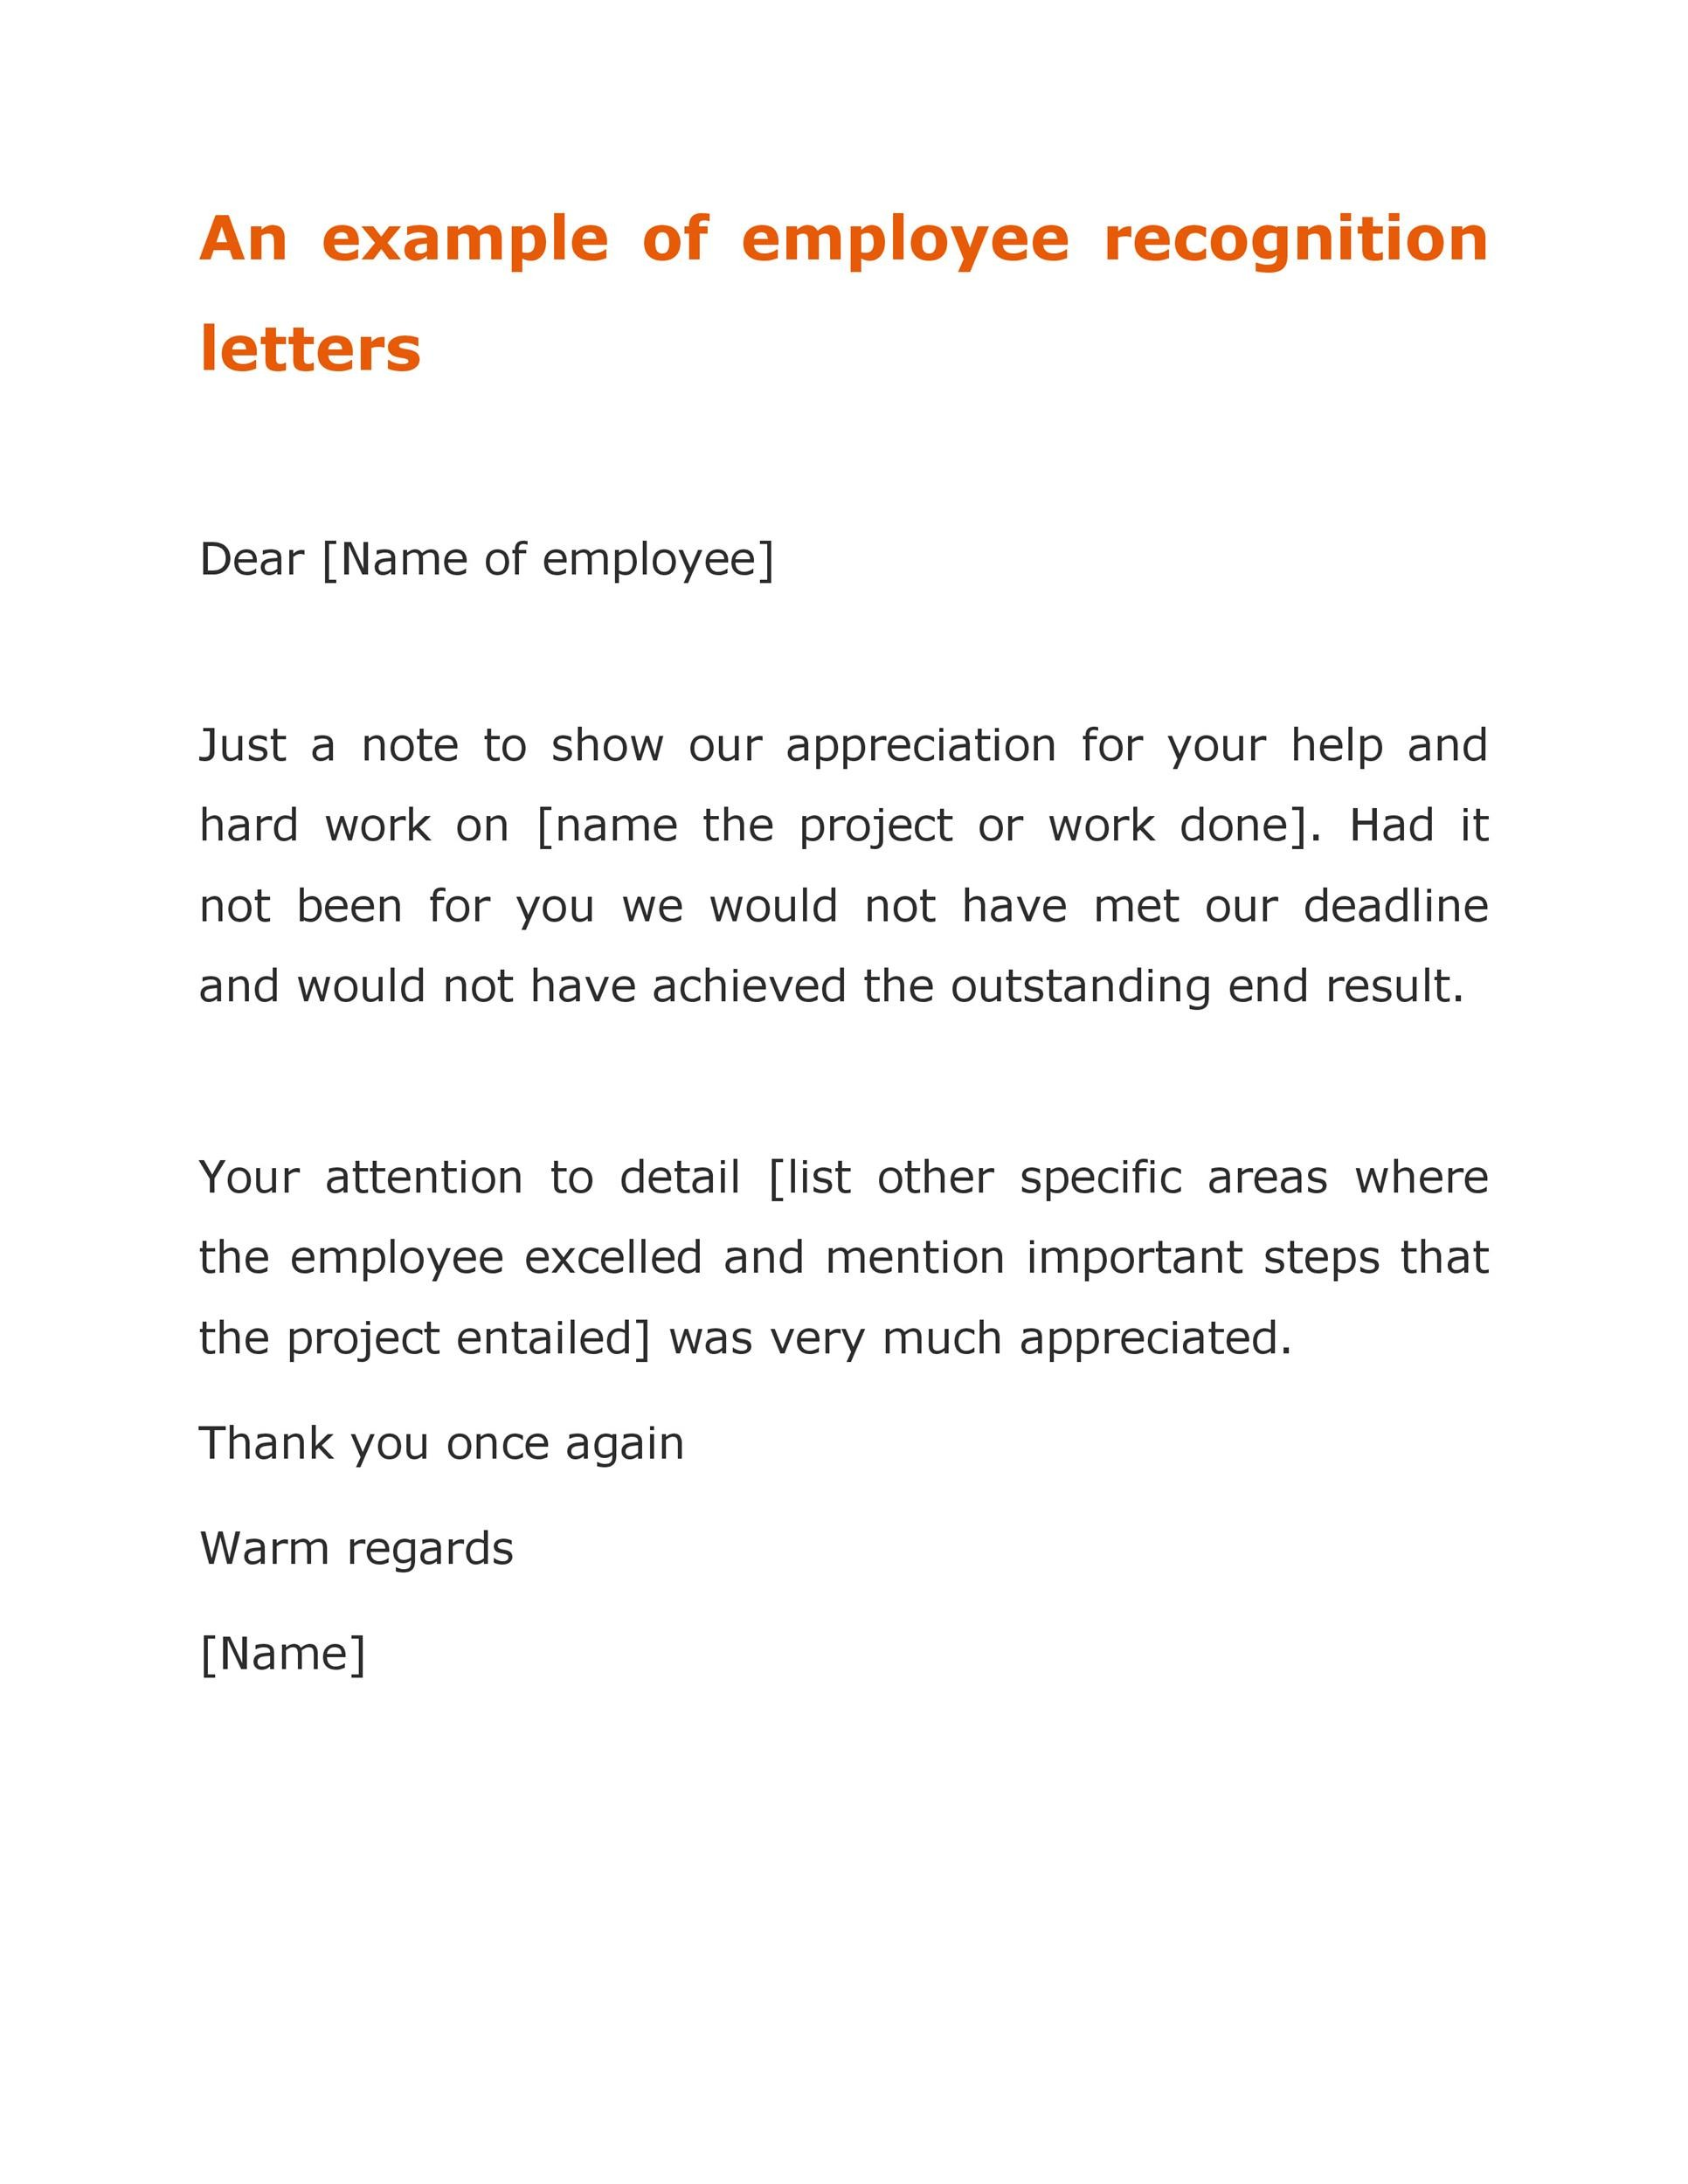 49 Printable Employee Recognition Letters (100% FREE) ᐅ Template Lab